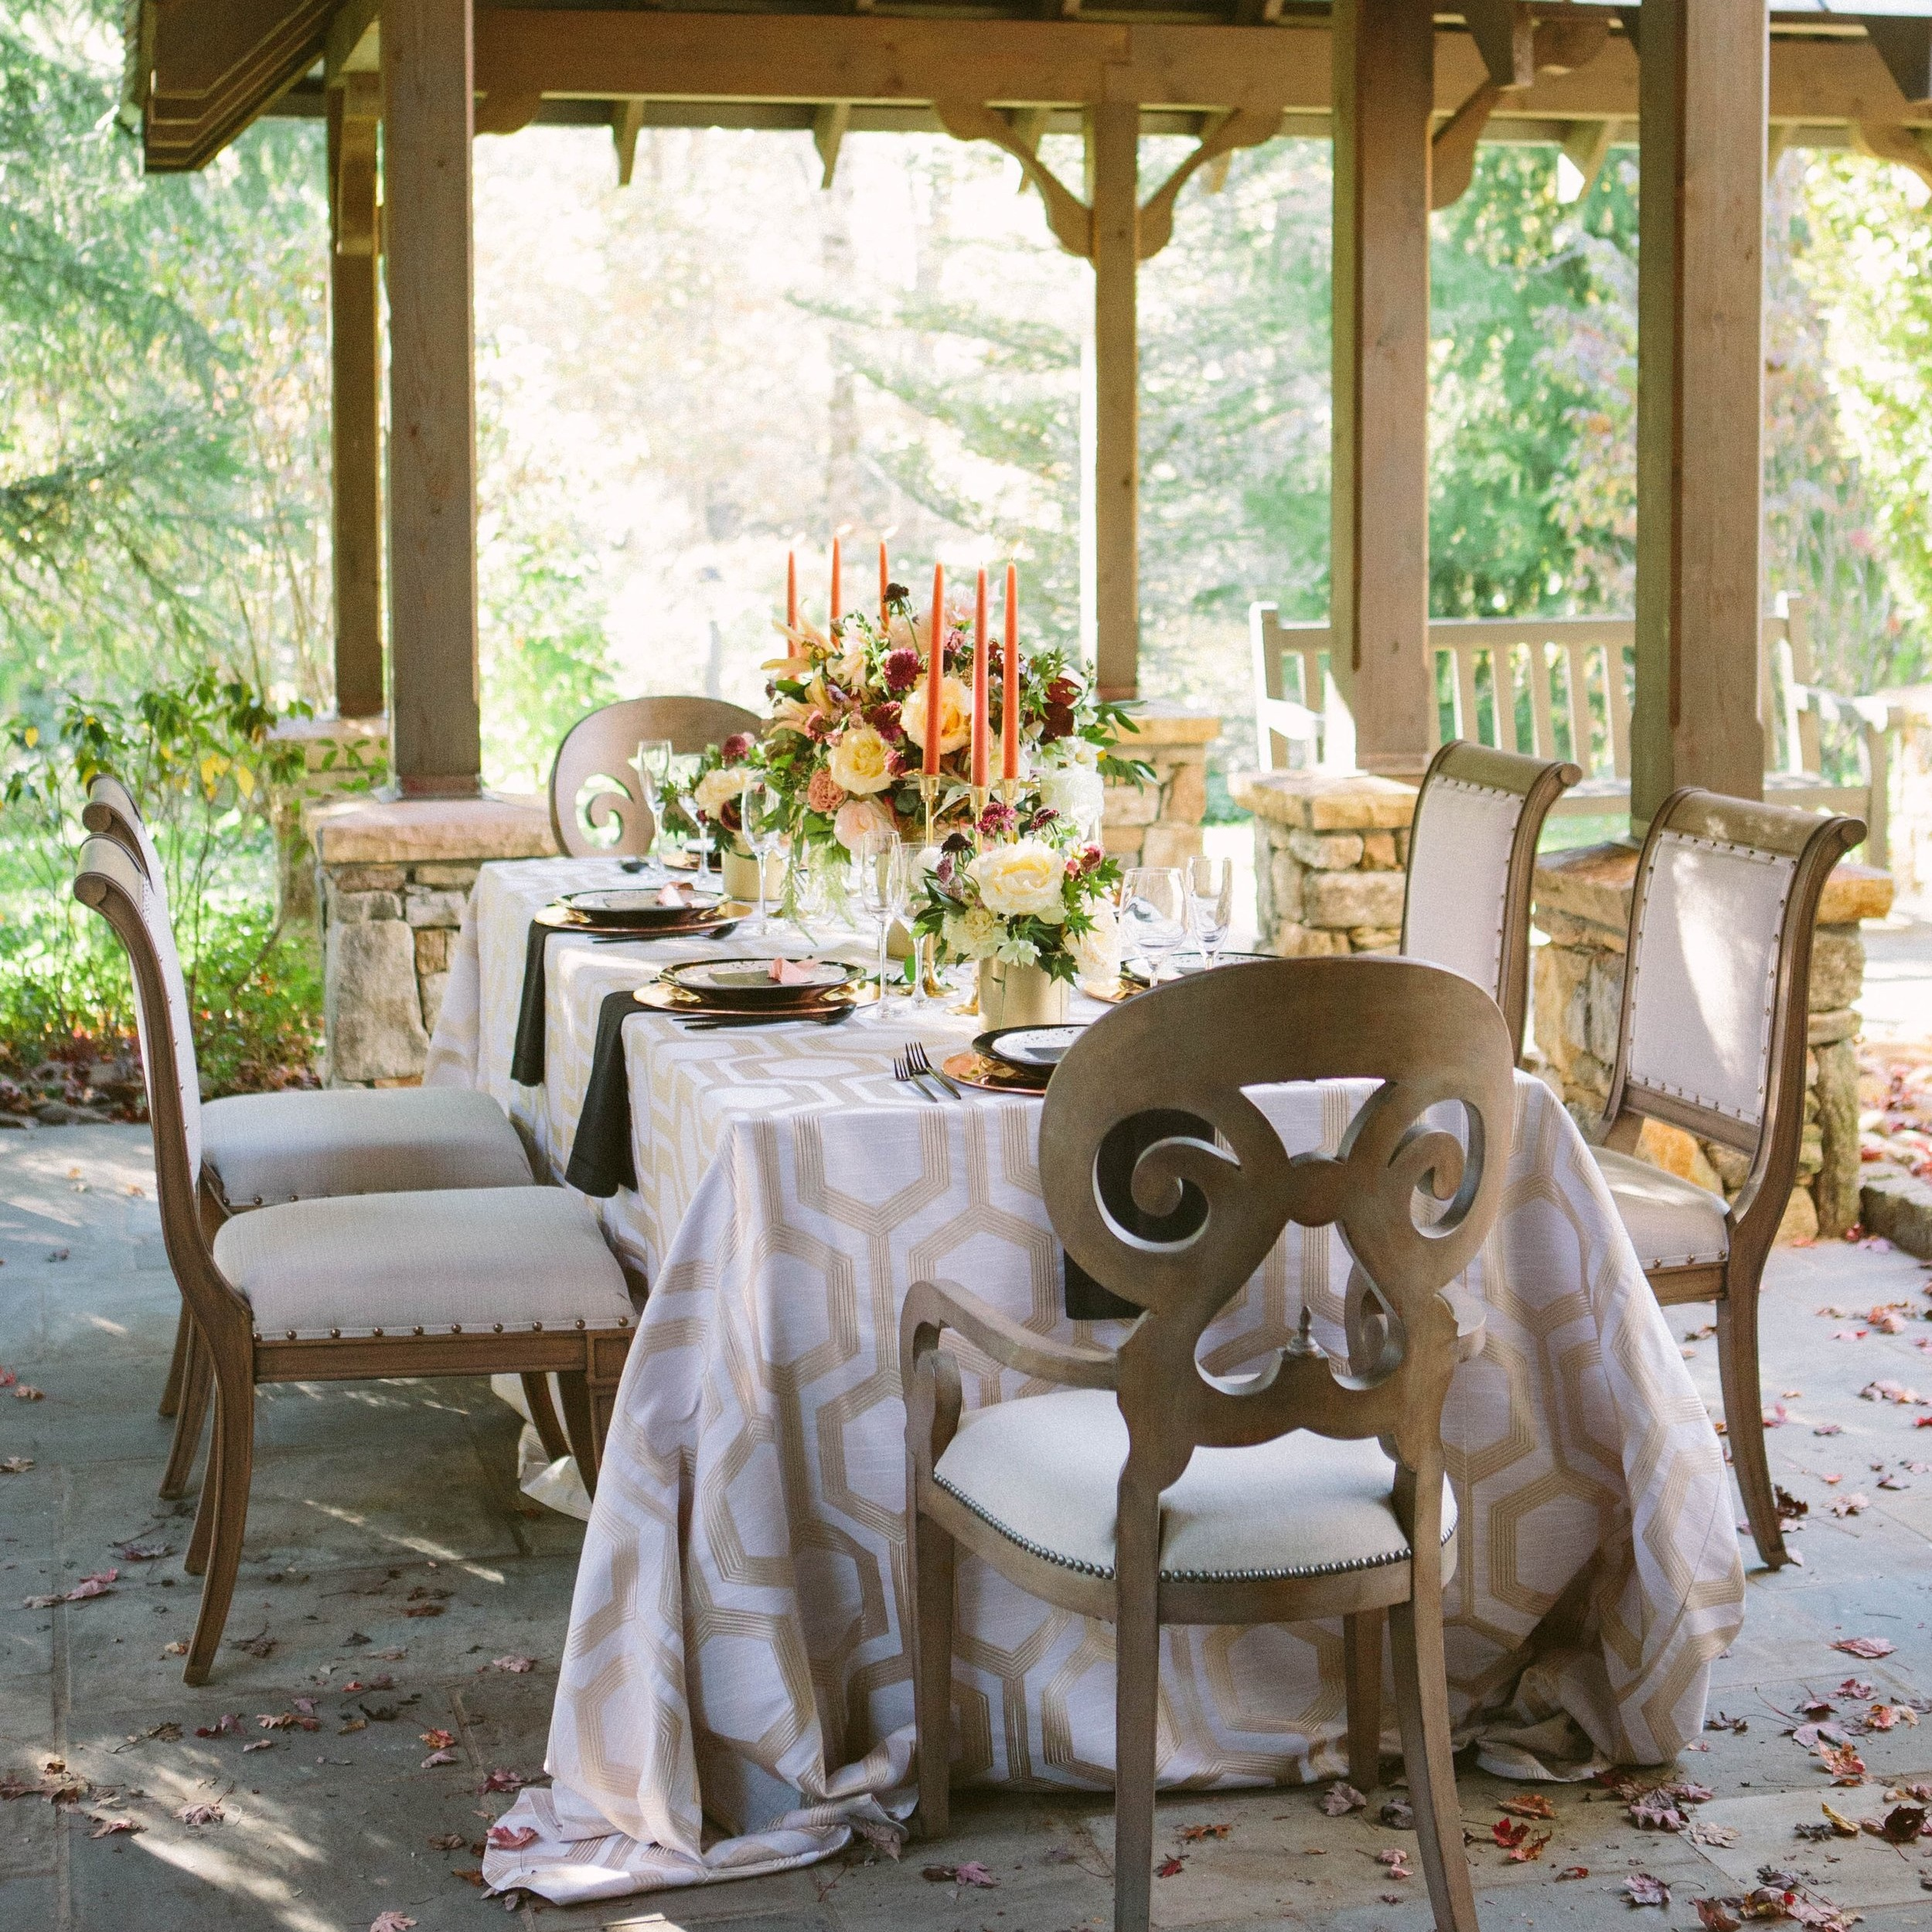 Fall Inspiration Shoot - The Farm at Old Edwards Inn